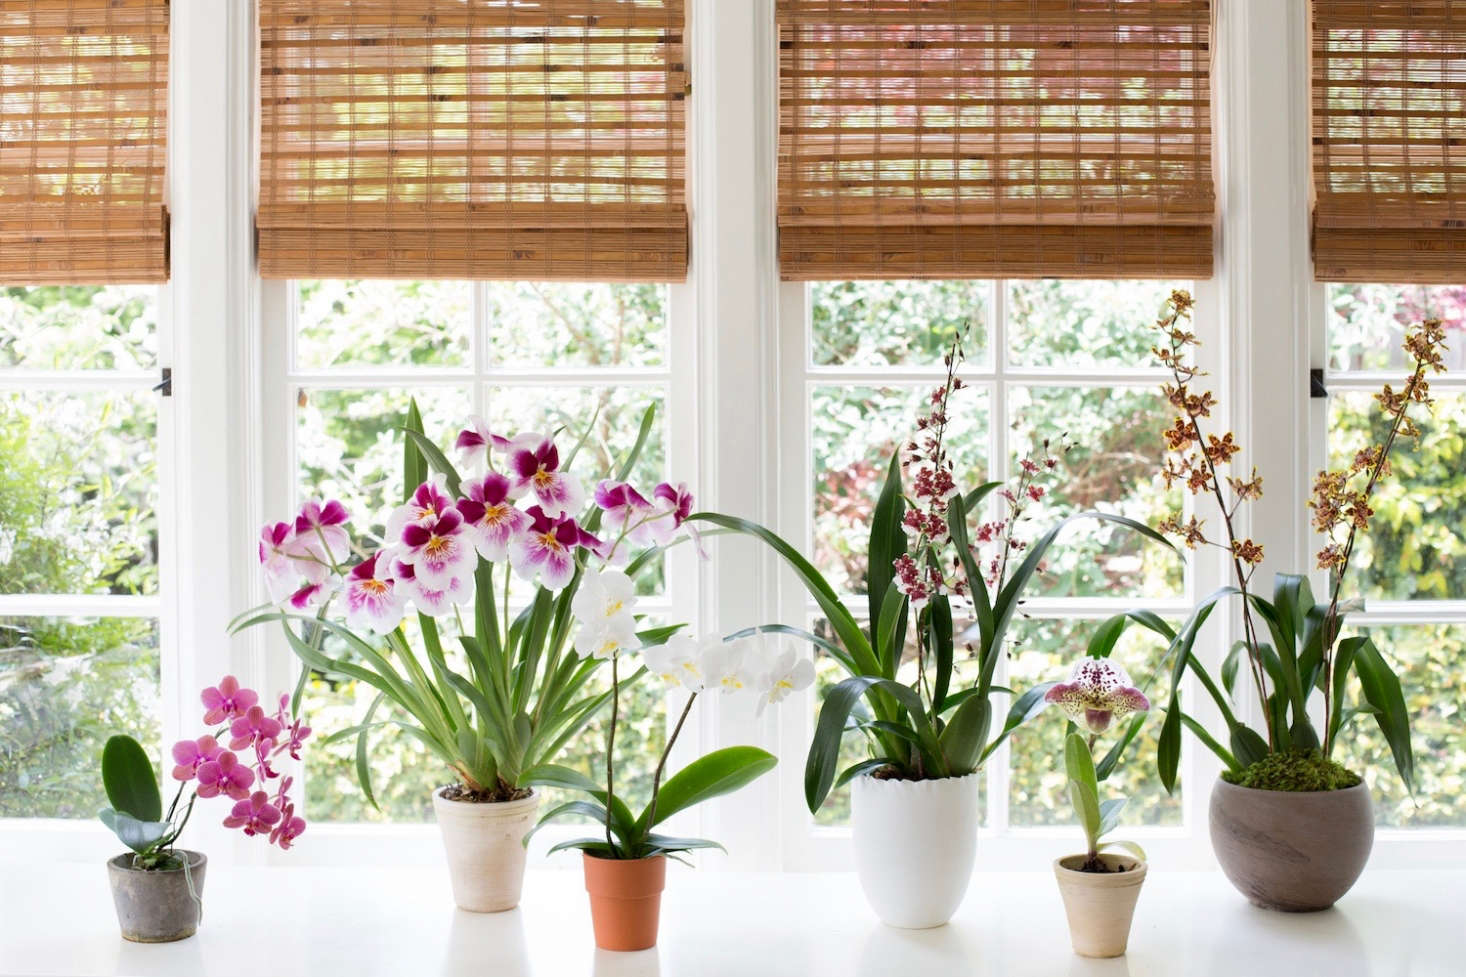 Six orchids in a row. From L to R,a pink Doritaenopsis hybrid, a fragrant Pansy Orchid, a white Moth Orchid, a Sharry Baby, a Lady's Slipper, and a yellow Oncidium. Photograph by Mimi Giboin.